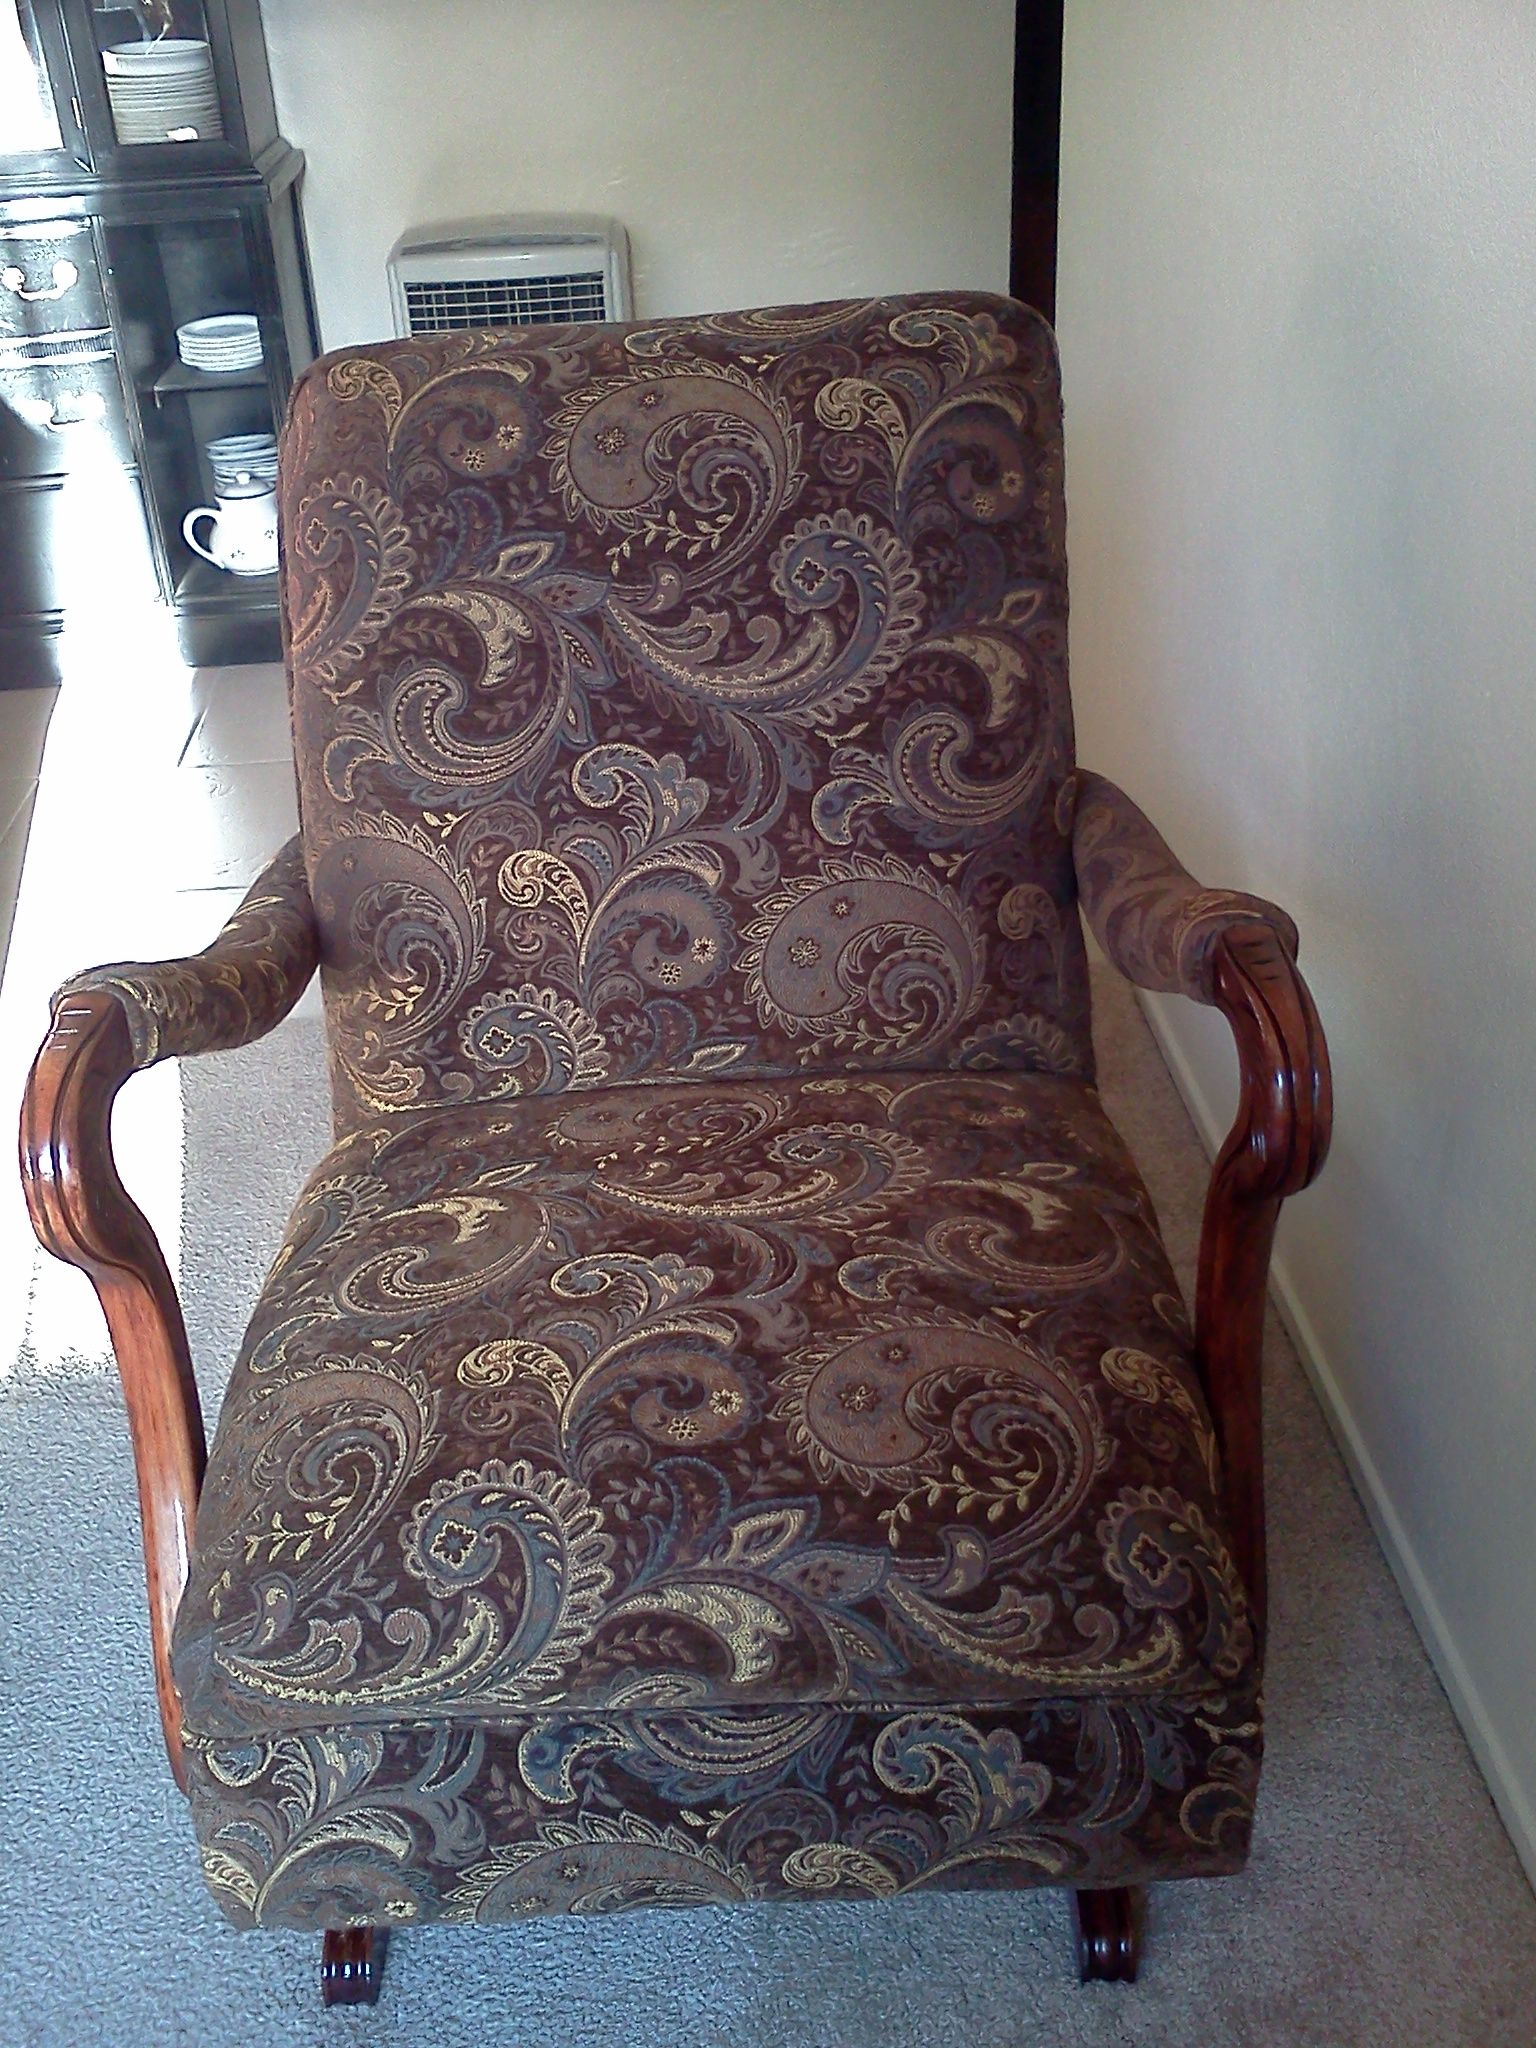 refinished and reupholstered antique platform rocker · Recover ChairsVintage  ChairsVintage Rocking ... - Refinished And Reupholstered Antique Platform Rocker Things I